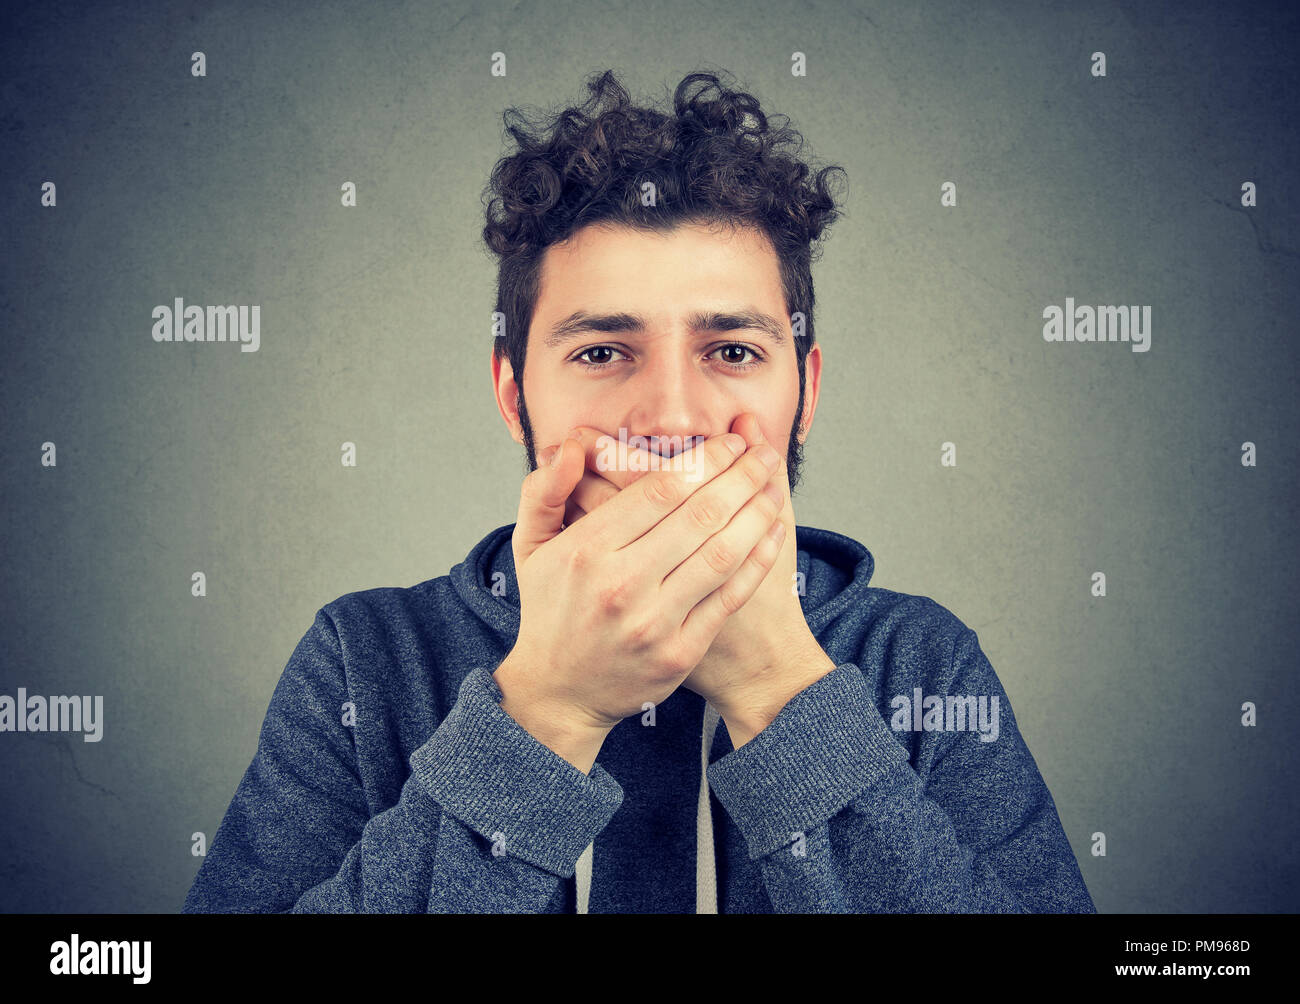 Young hipster man covering mouth keeping privacy and speaking no evil - Stock Image